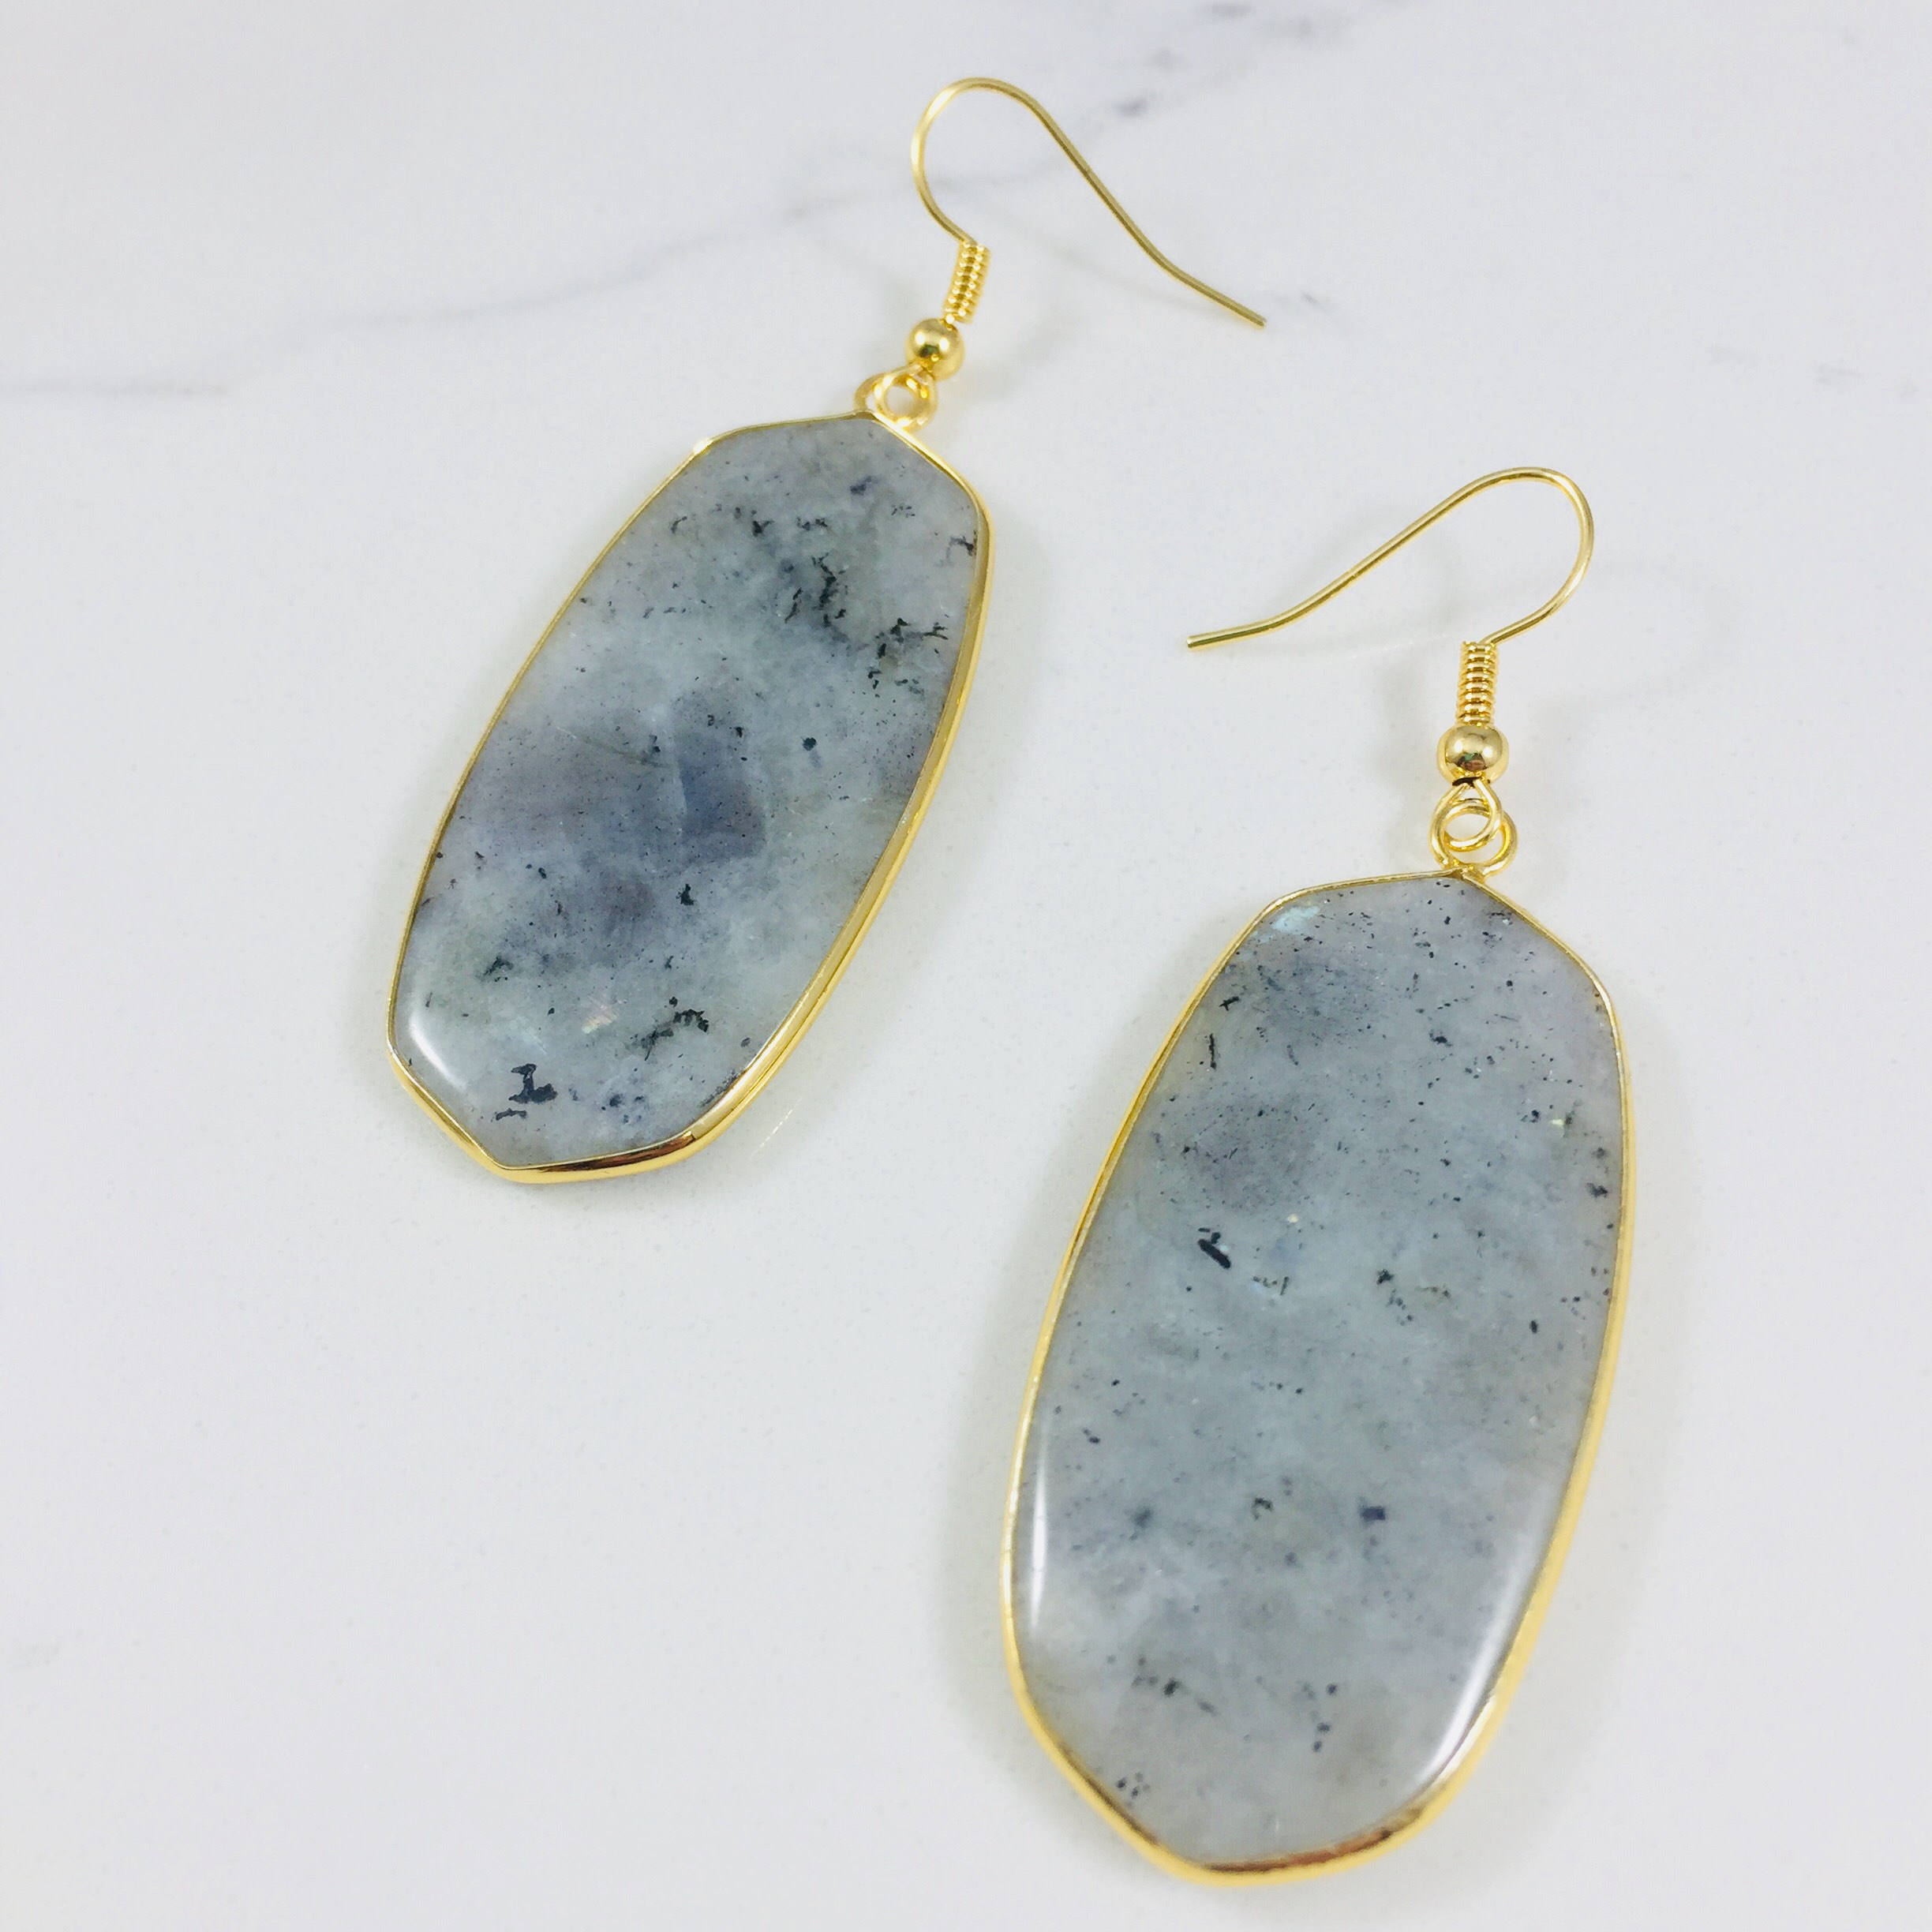 earrings product shipping quartz michael valitutti today onyx and gold silver watches labradorite green smoky overstock over free jewelry